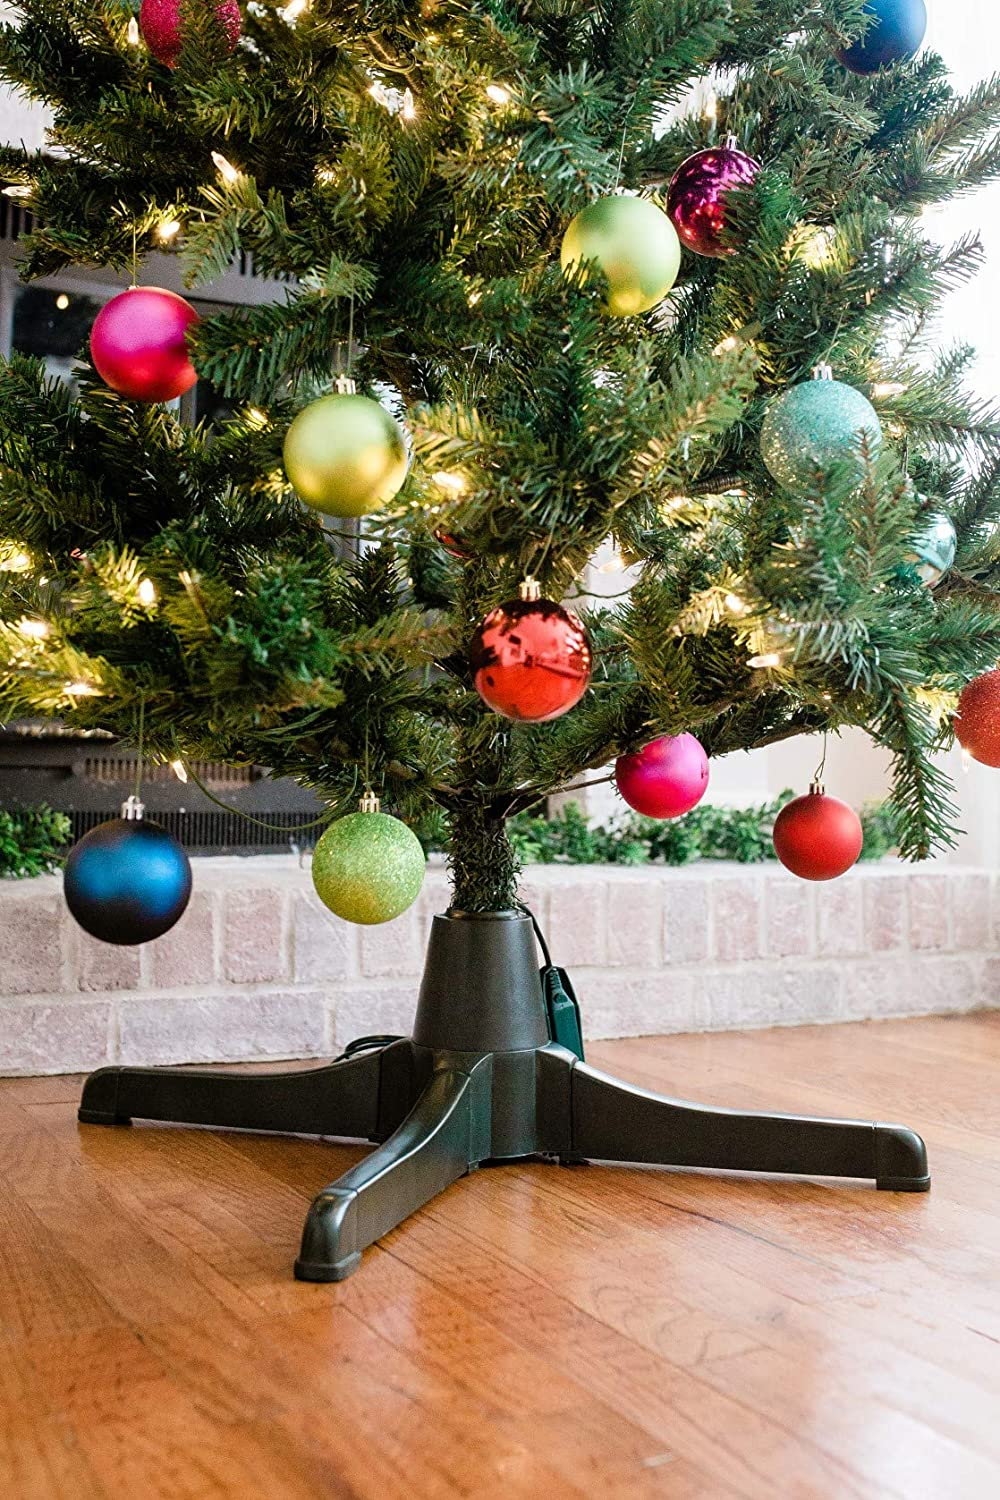 Amazon.com: Winter Wonder Rotating Christmas Tree Stand for Artificial Trees: Home \u0026 Kitchen